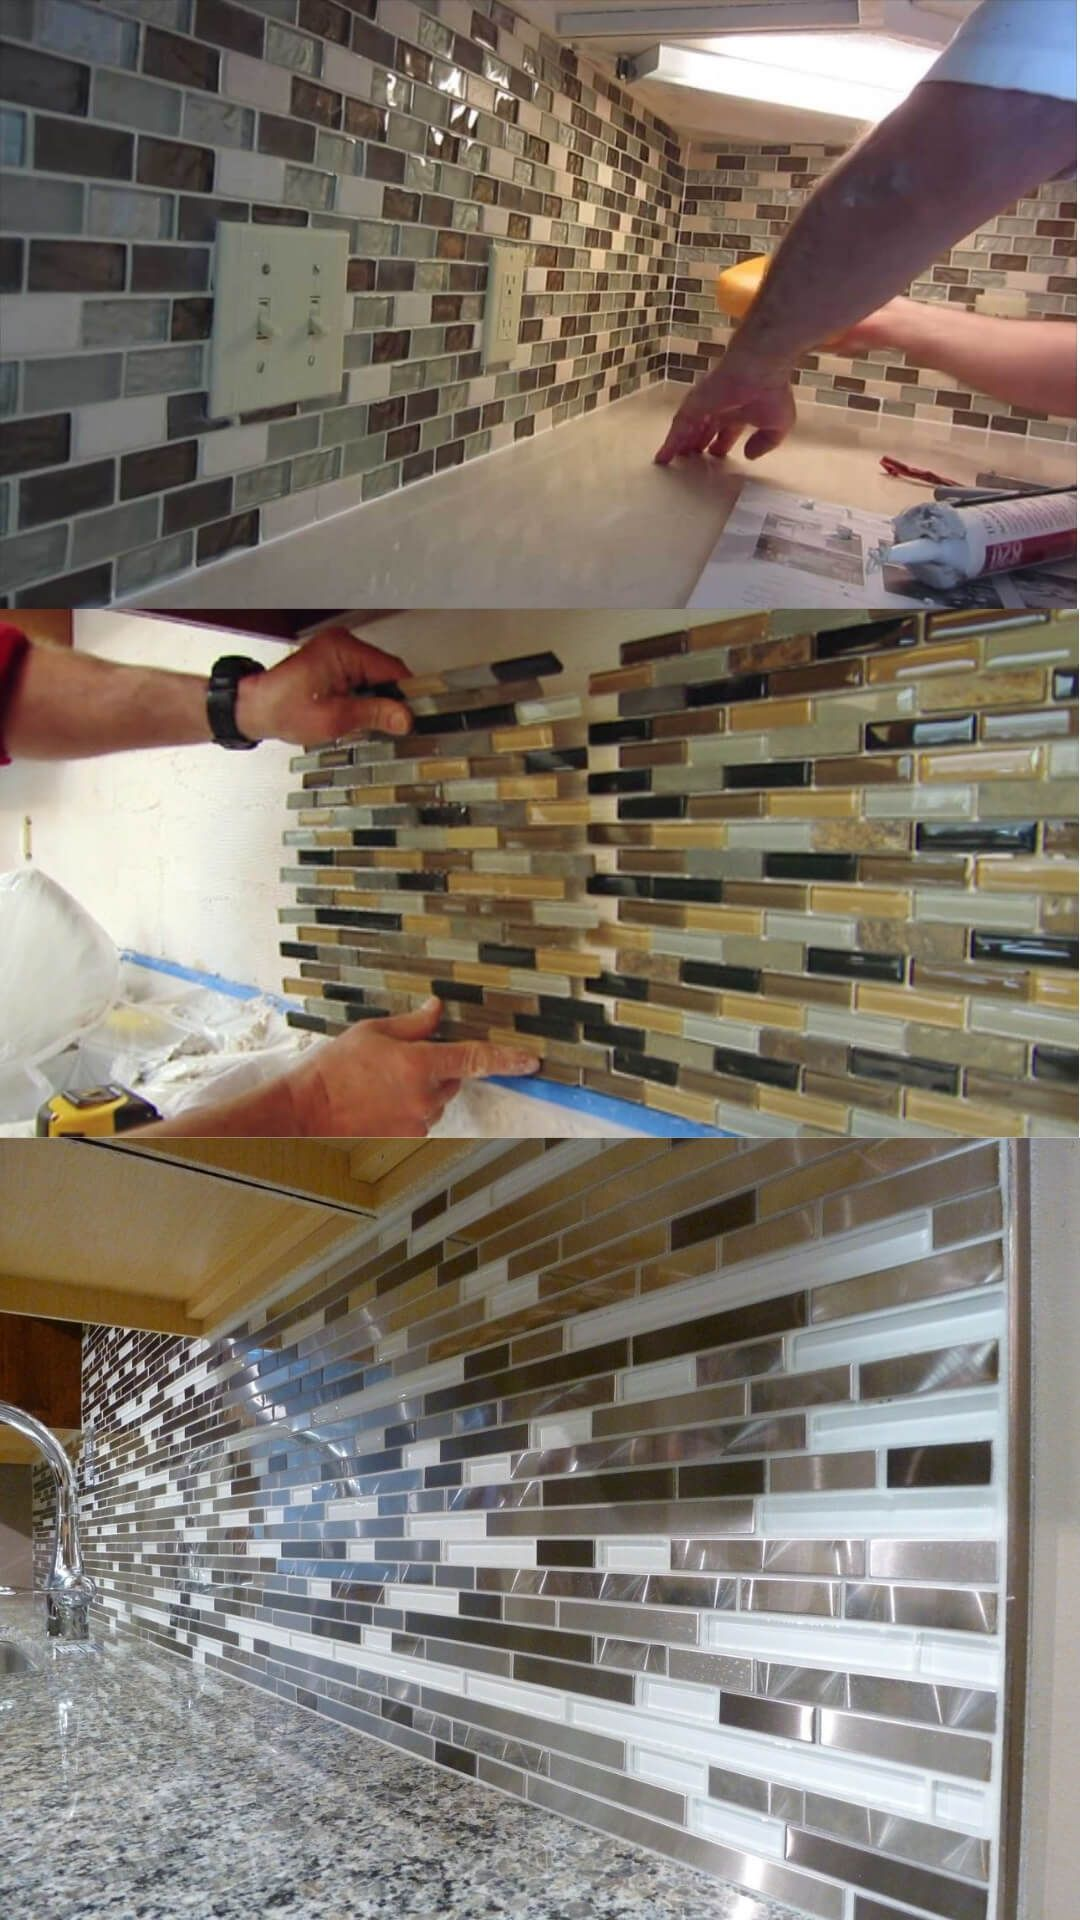 19 Ceramic Tile Mosaic Kitchen Backsplash Designs Ideas For